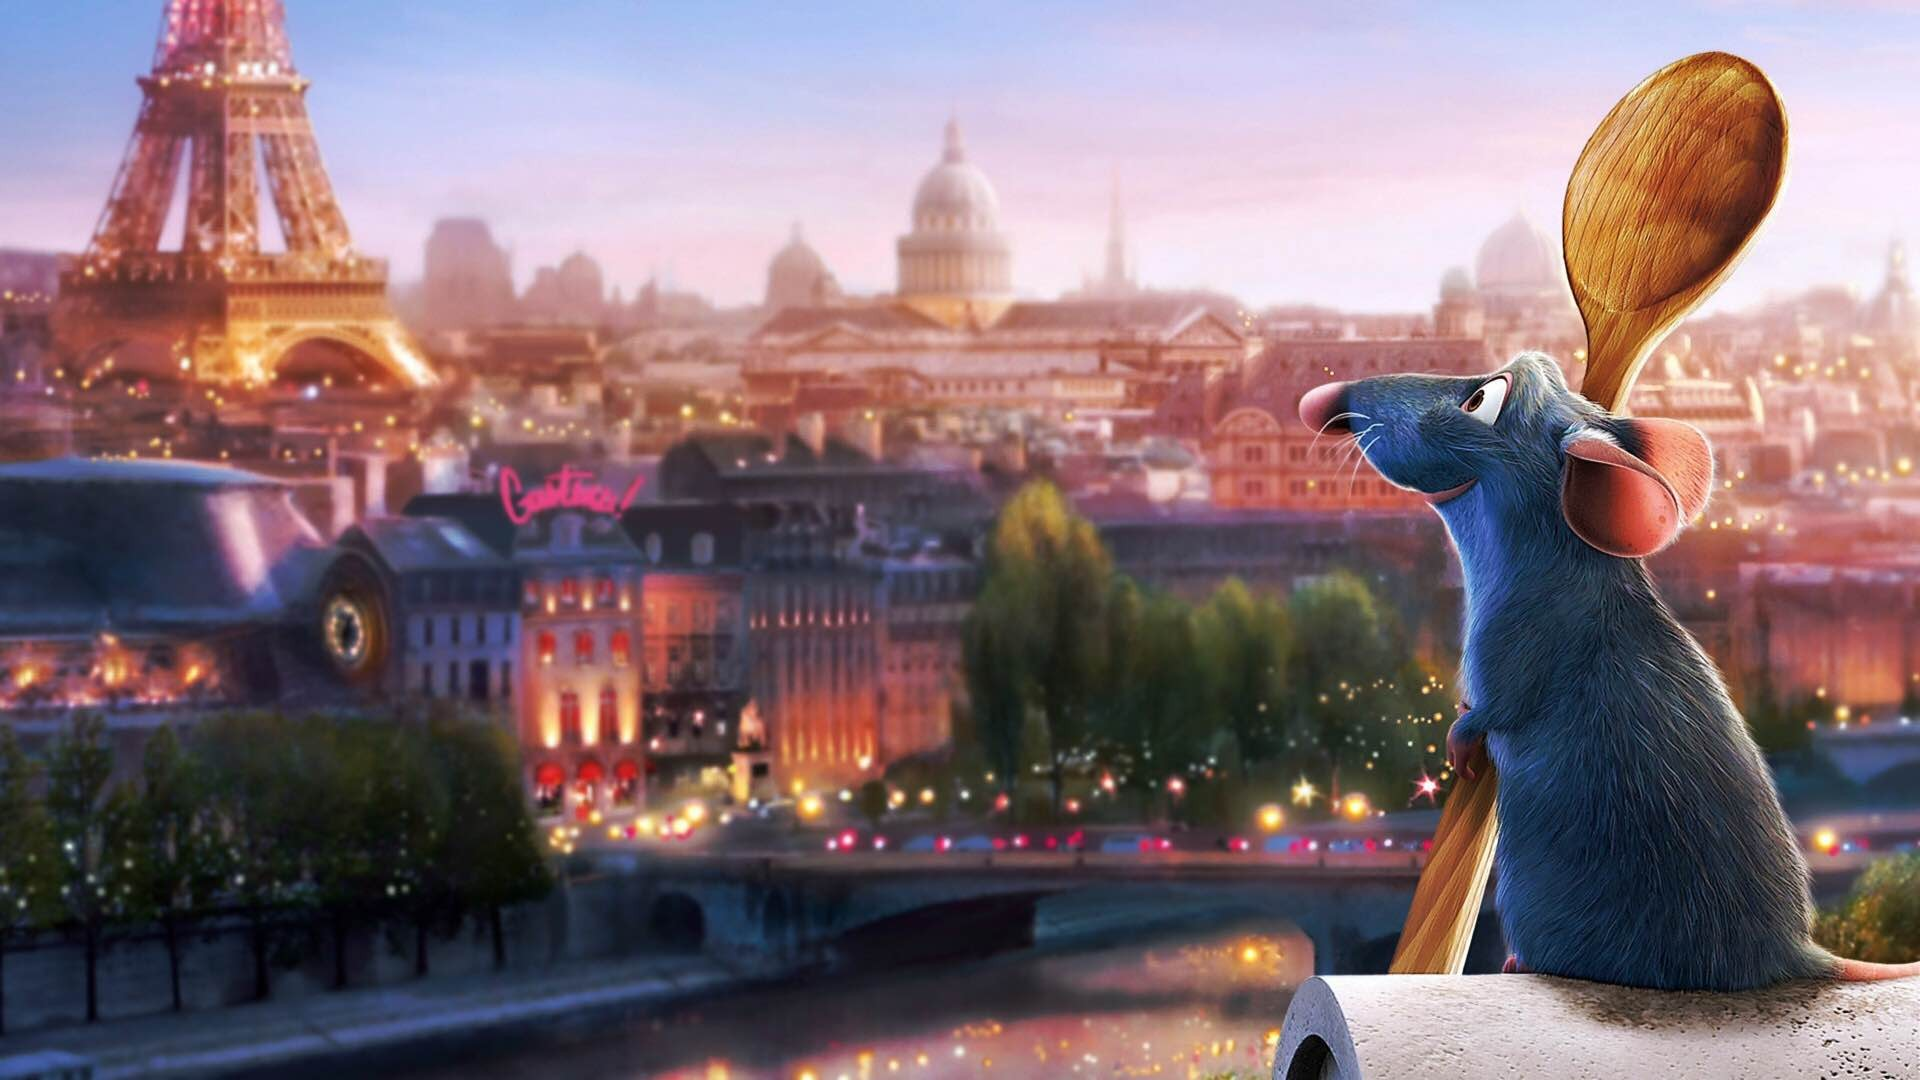 Disney-Pixar's Ratatouille. ($18 for 2-disc Blu-ray/DVD combo pack)